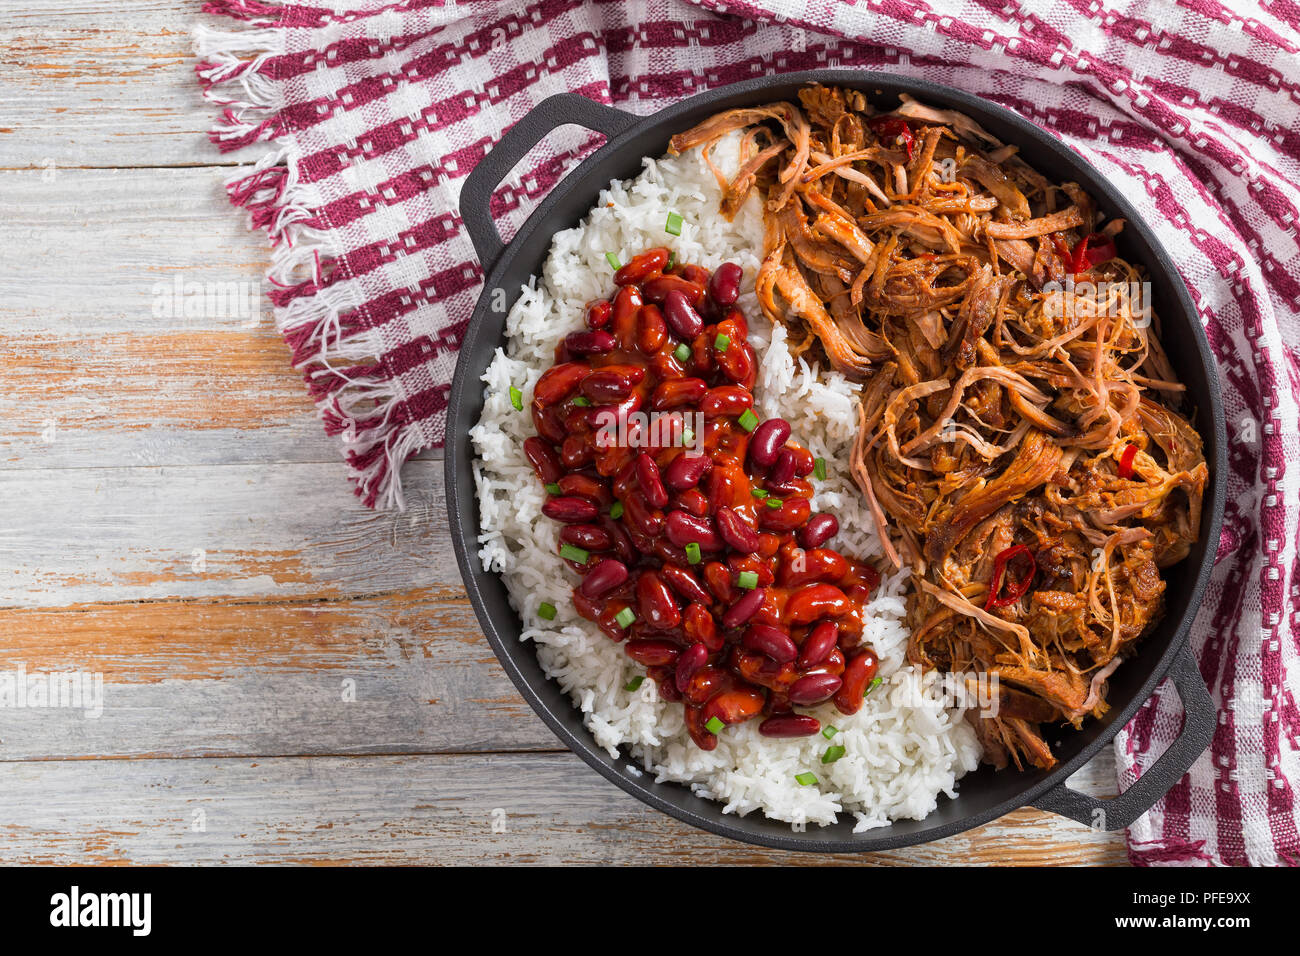 pulled slow-cooked delicious spicy meat with rice and savory Baked Beans sprinkled with green onion in stewpot with kitchen towel, on wooden table, vi - Stock Image